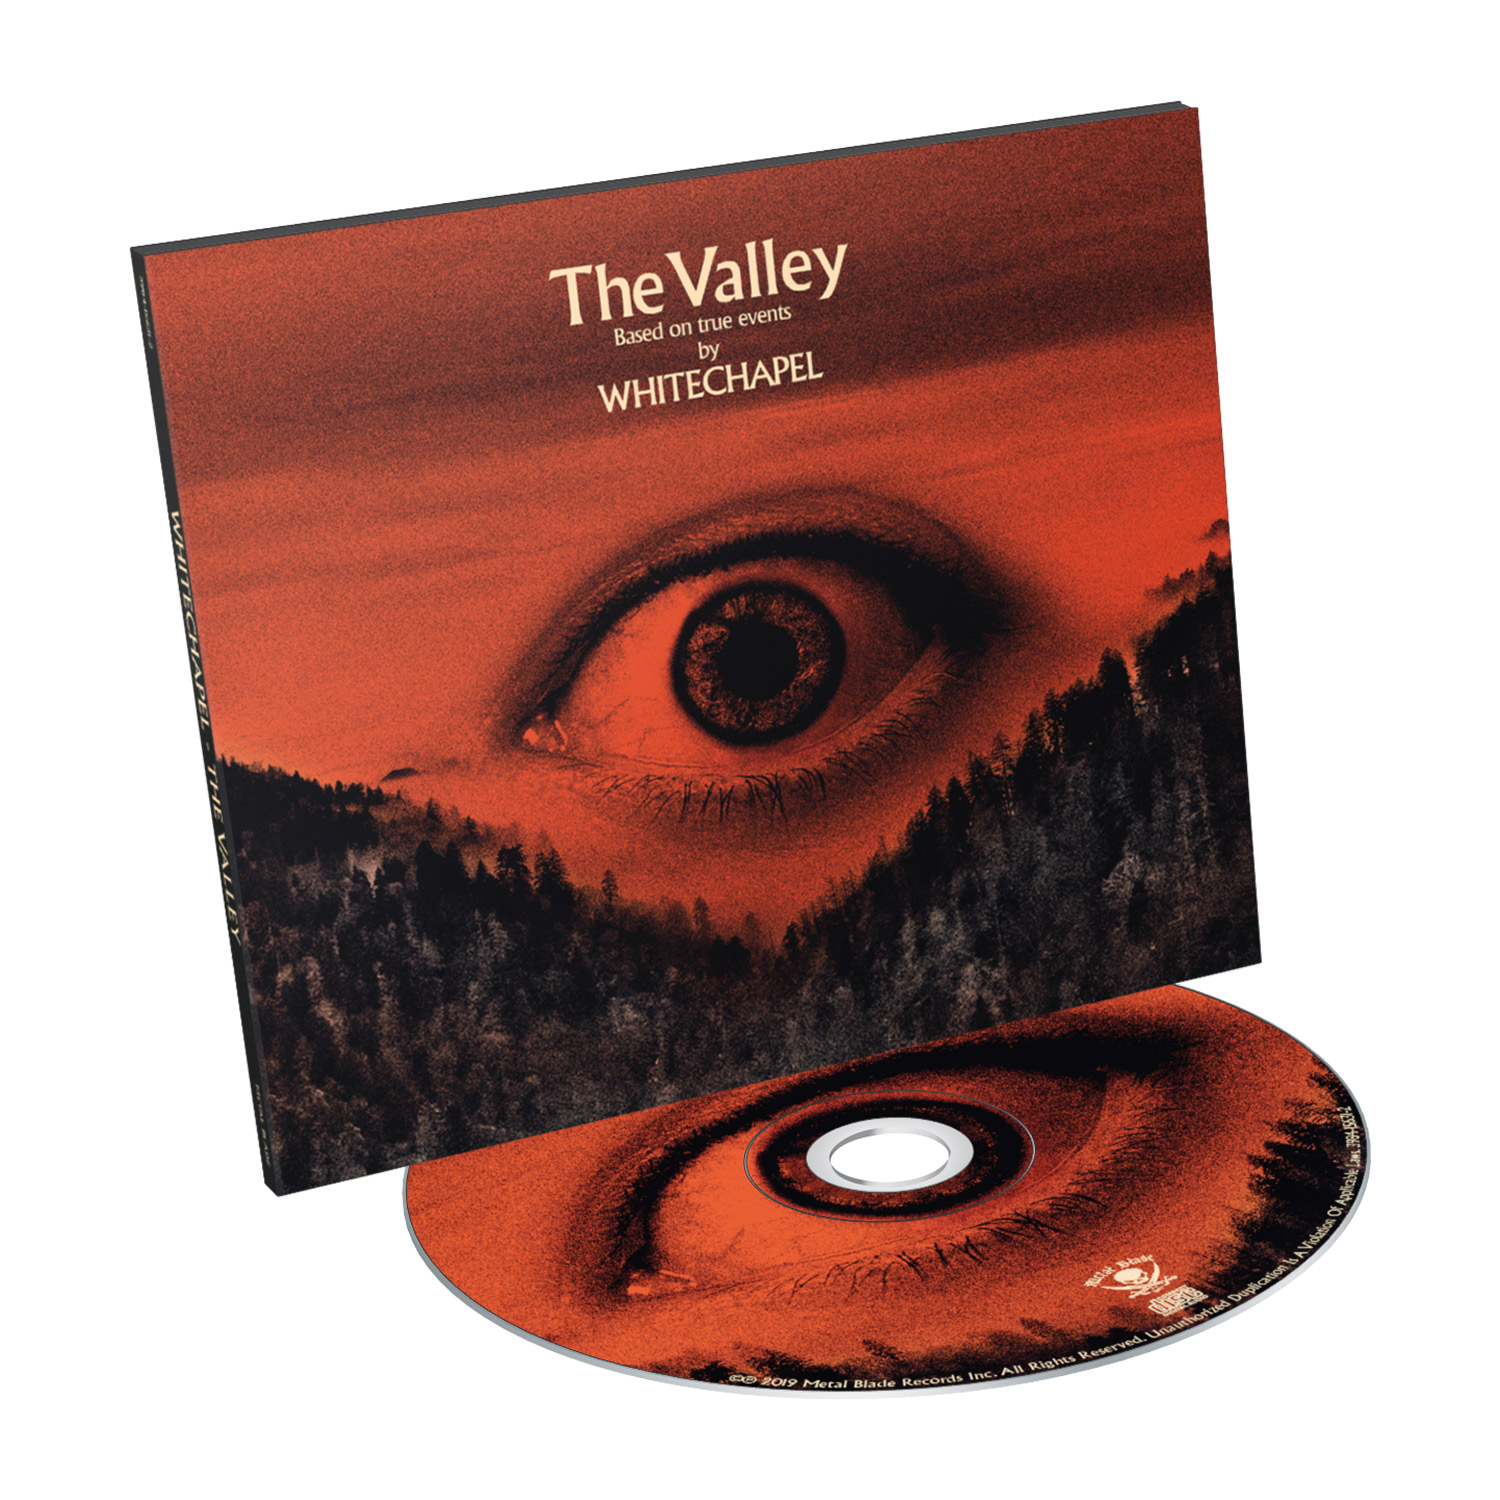 The Valley - CD Bundle - Valley